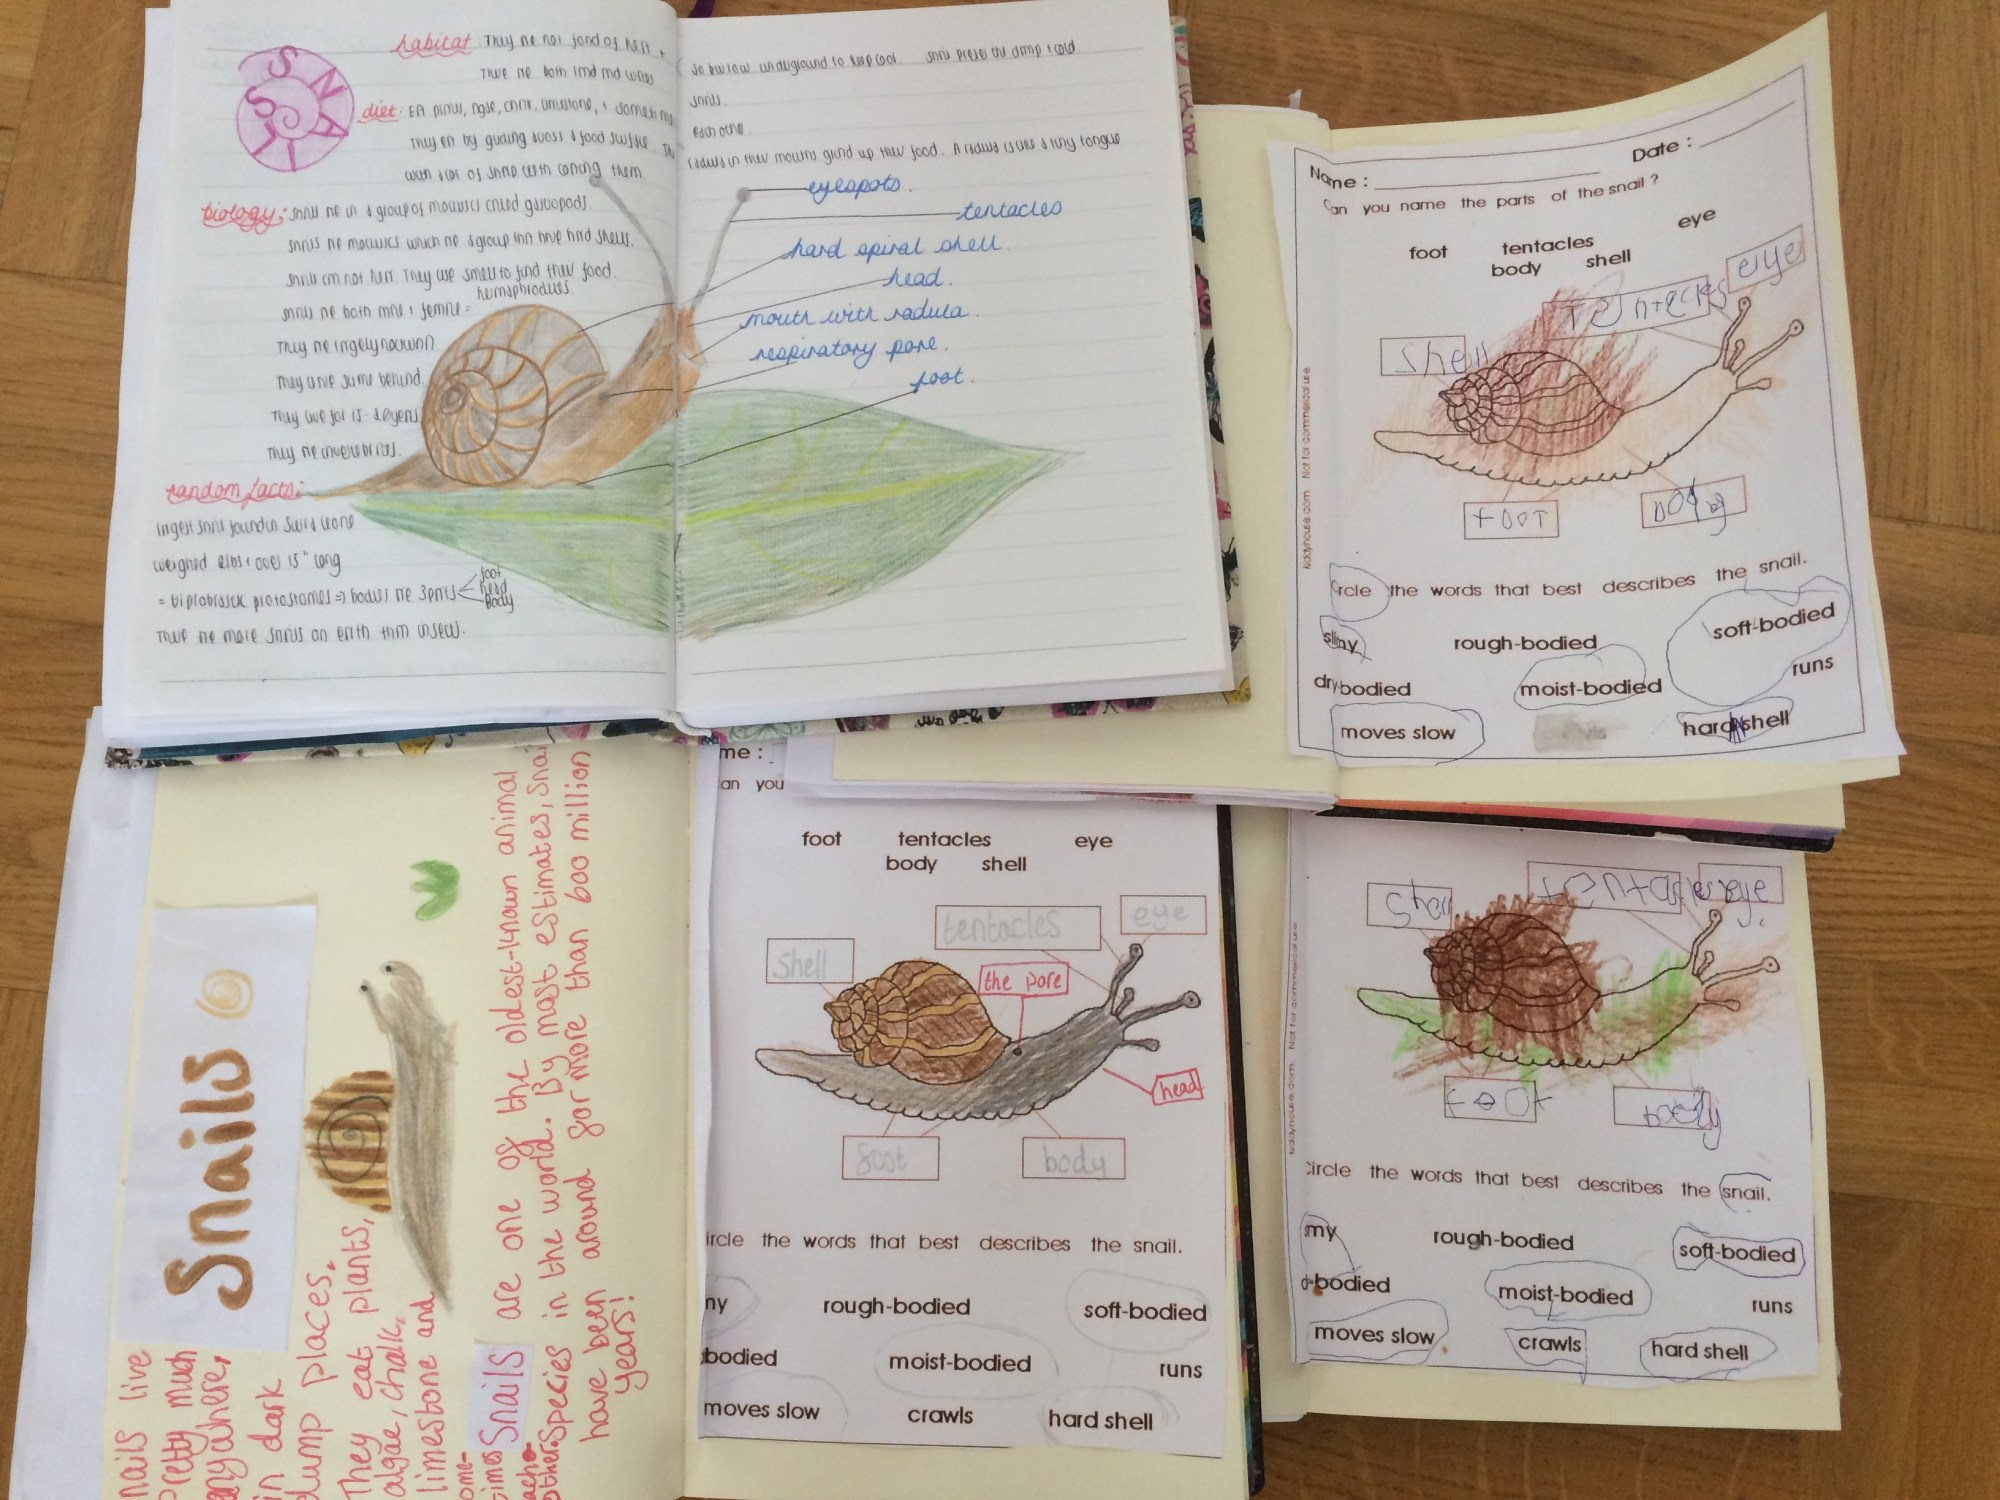 hight resolution of for our nature journals we sketched a picture from an image on the computer in the absence of a real model we looked at a snail s anatomy their habitat